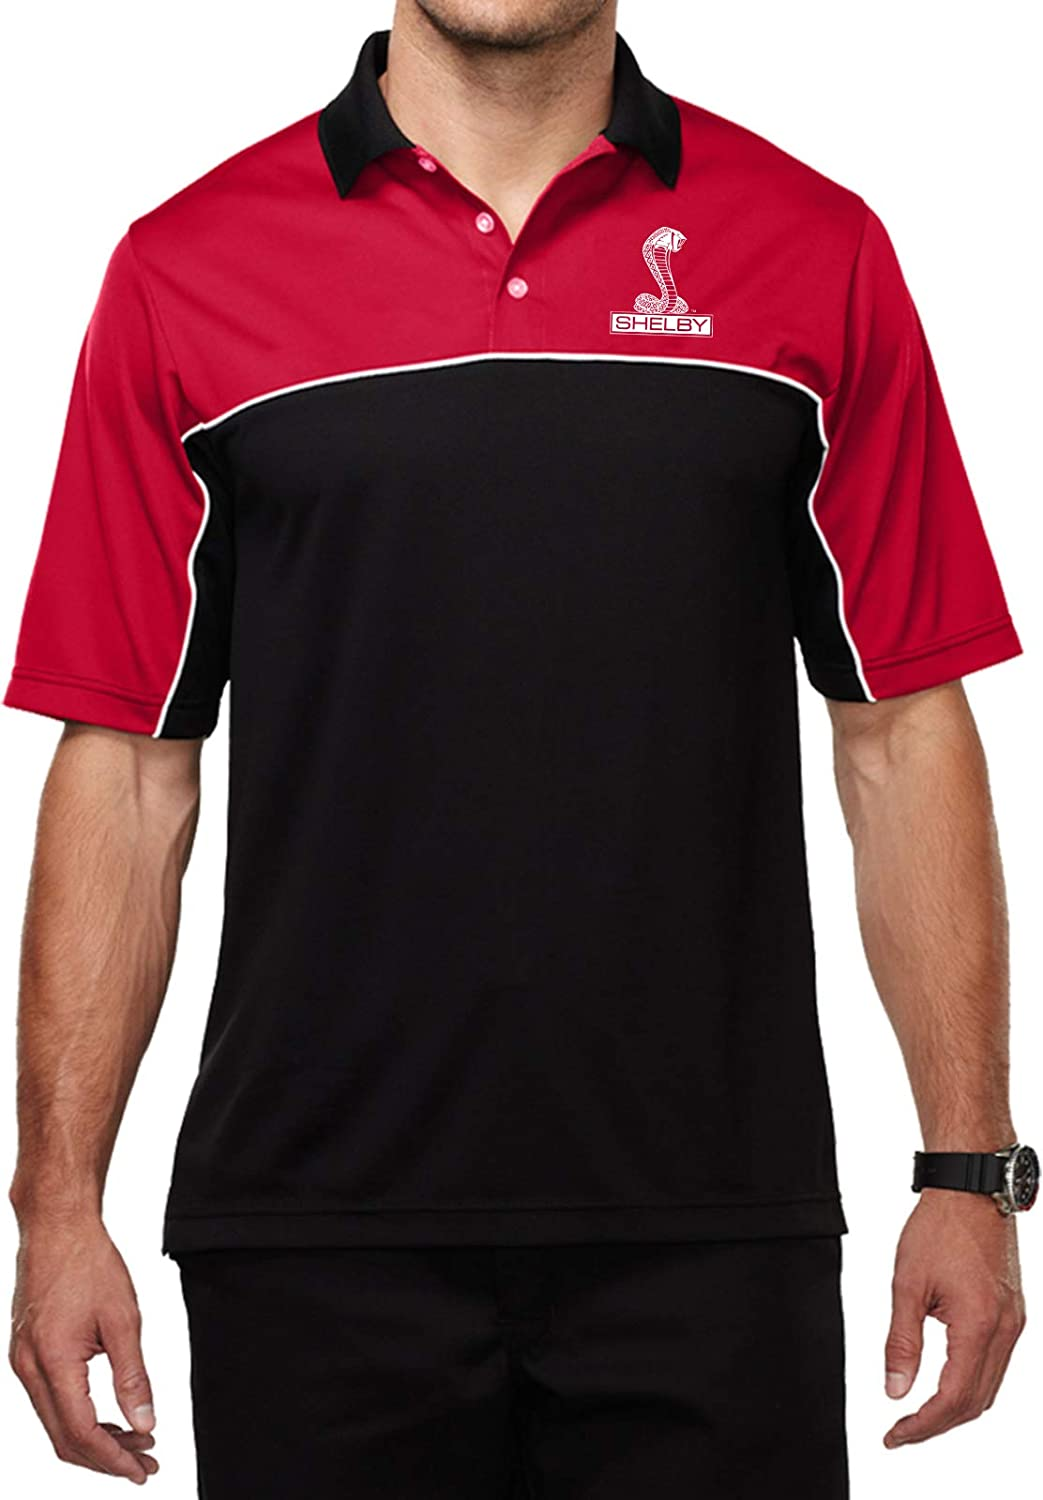 Ford Shelby Cobra Pocket Print Mens Moisture Wicking Polo, Red Small